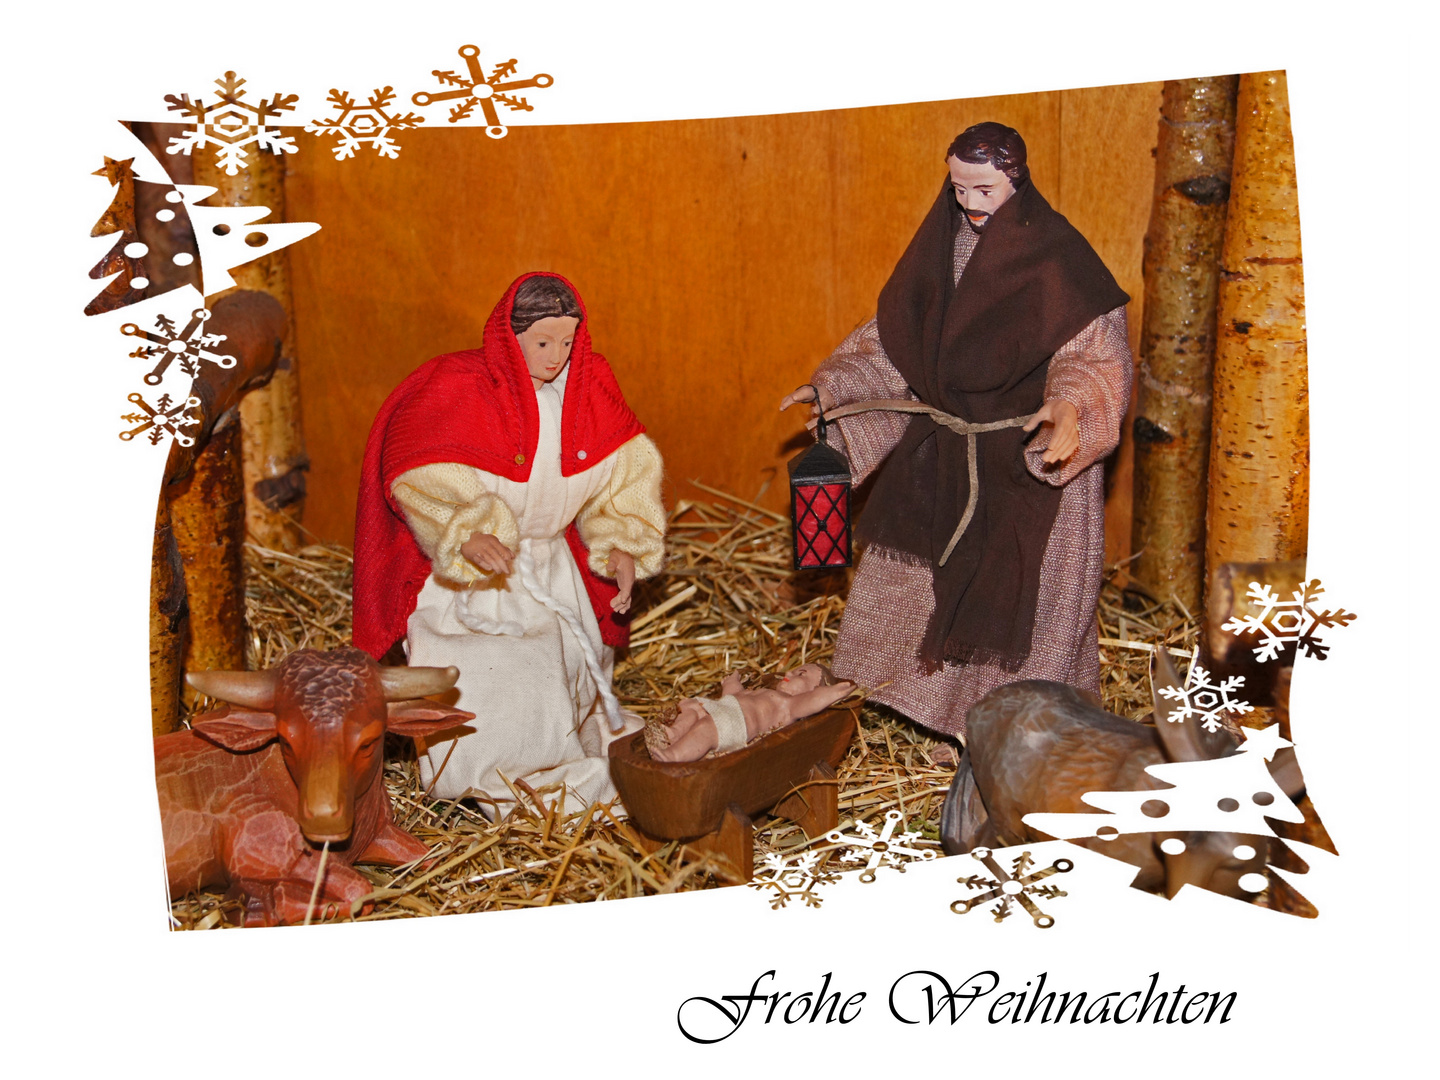 Frohe Weihnachten - Joyeuses Fêtes - Merry Christmas